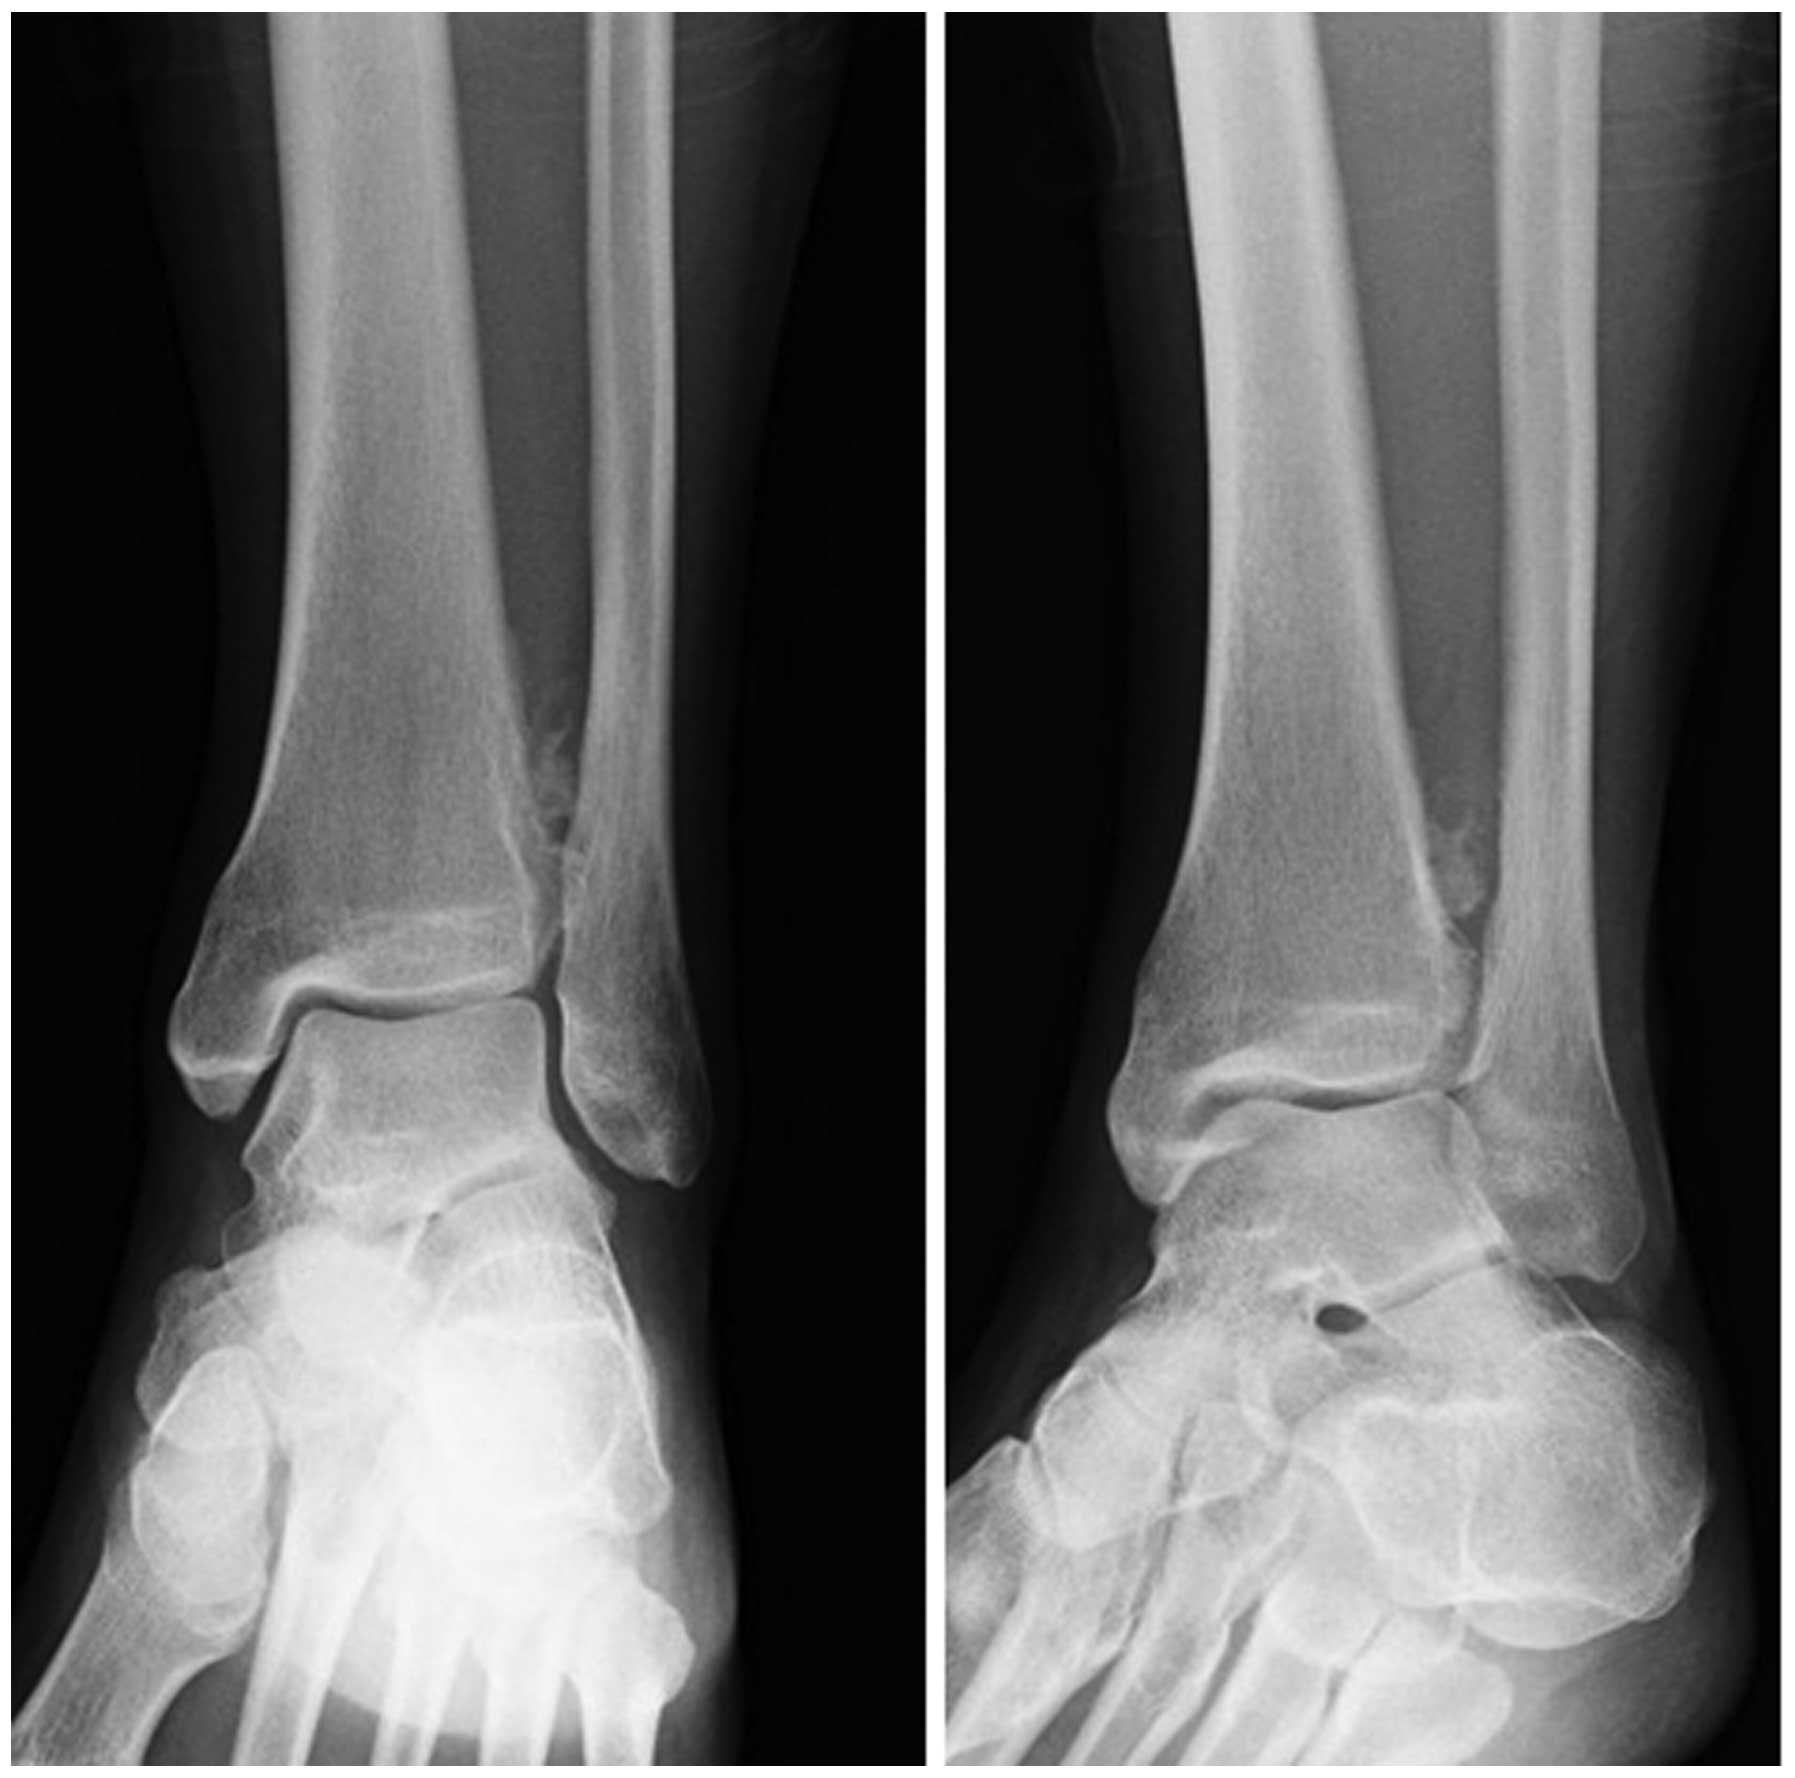 Periosteal chondroma of the distal tibia: Computed tomography and